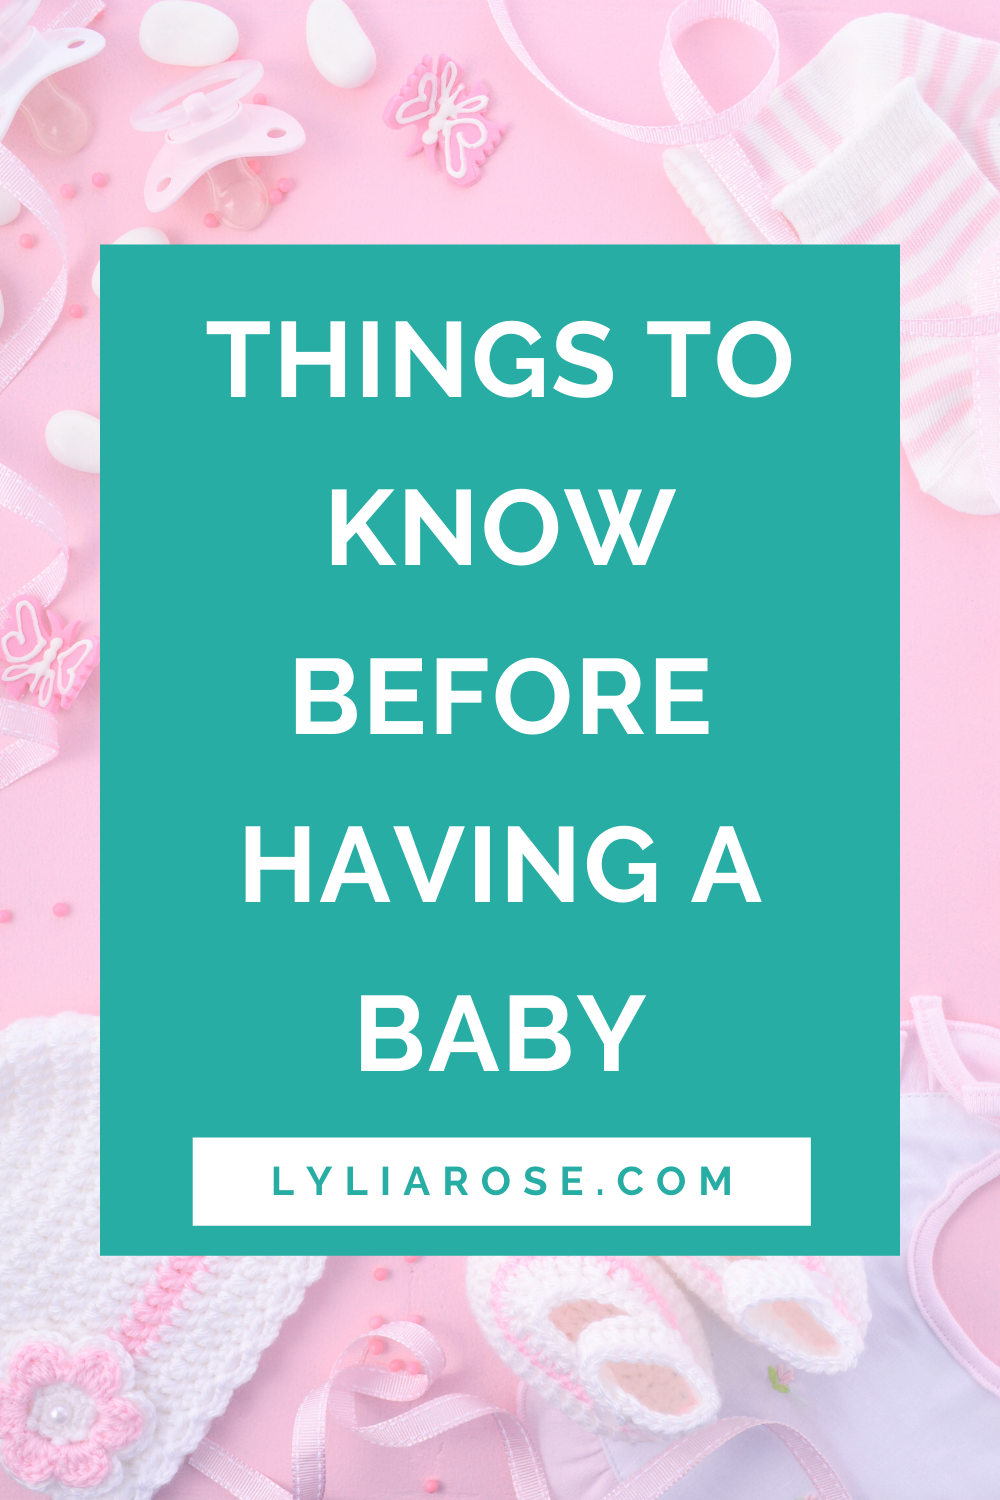 Things to know before having a baby